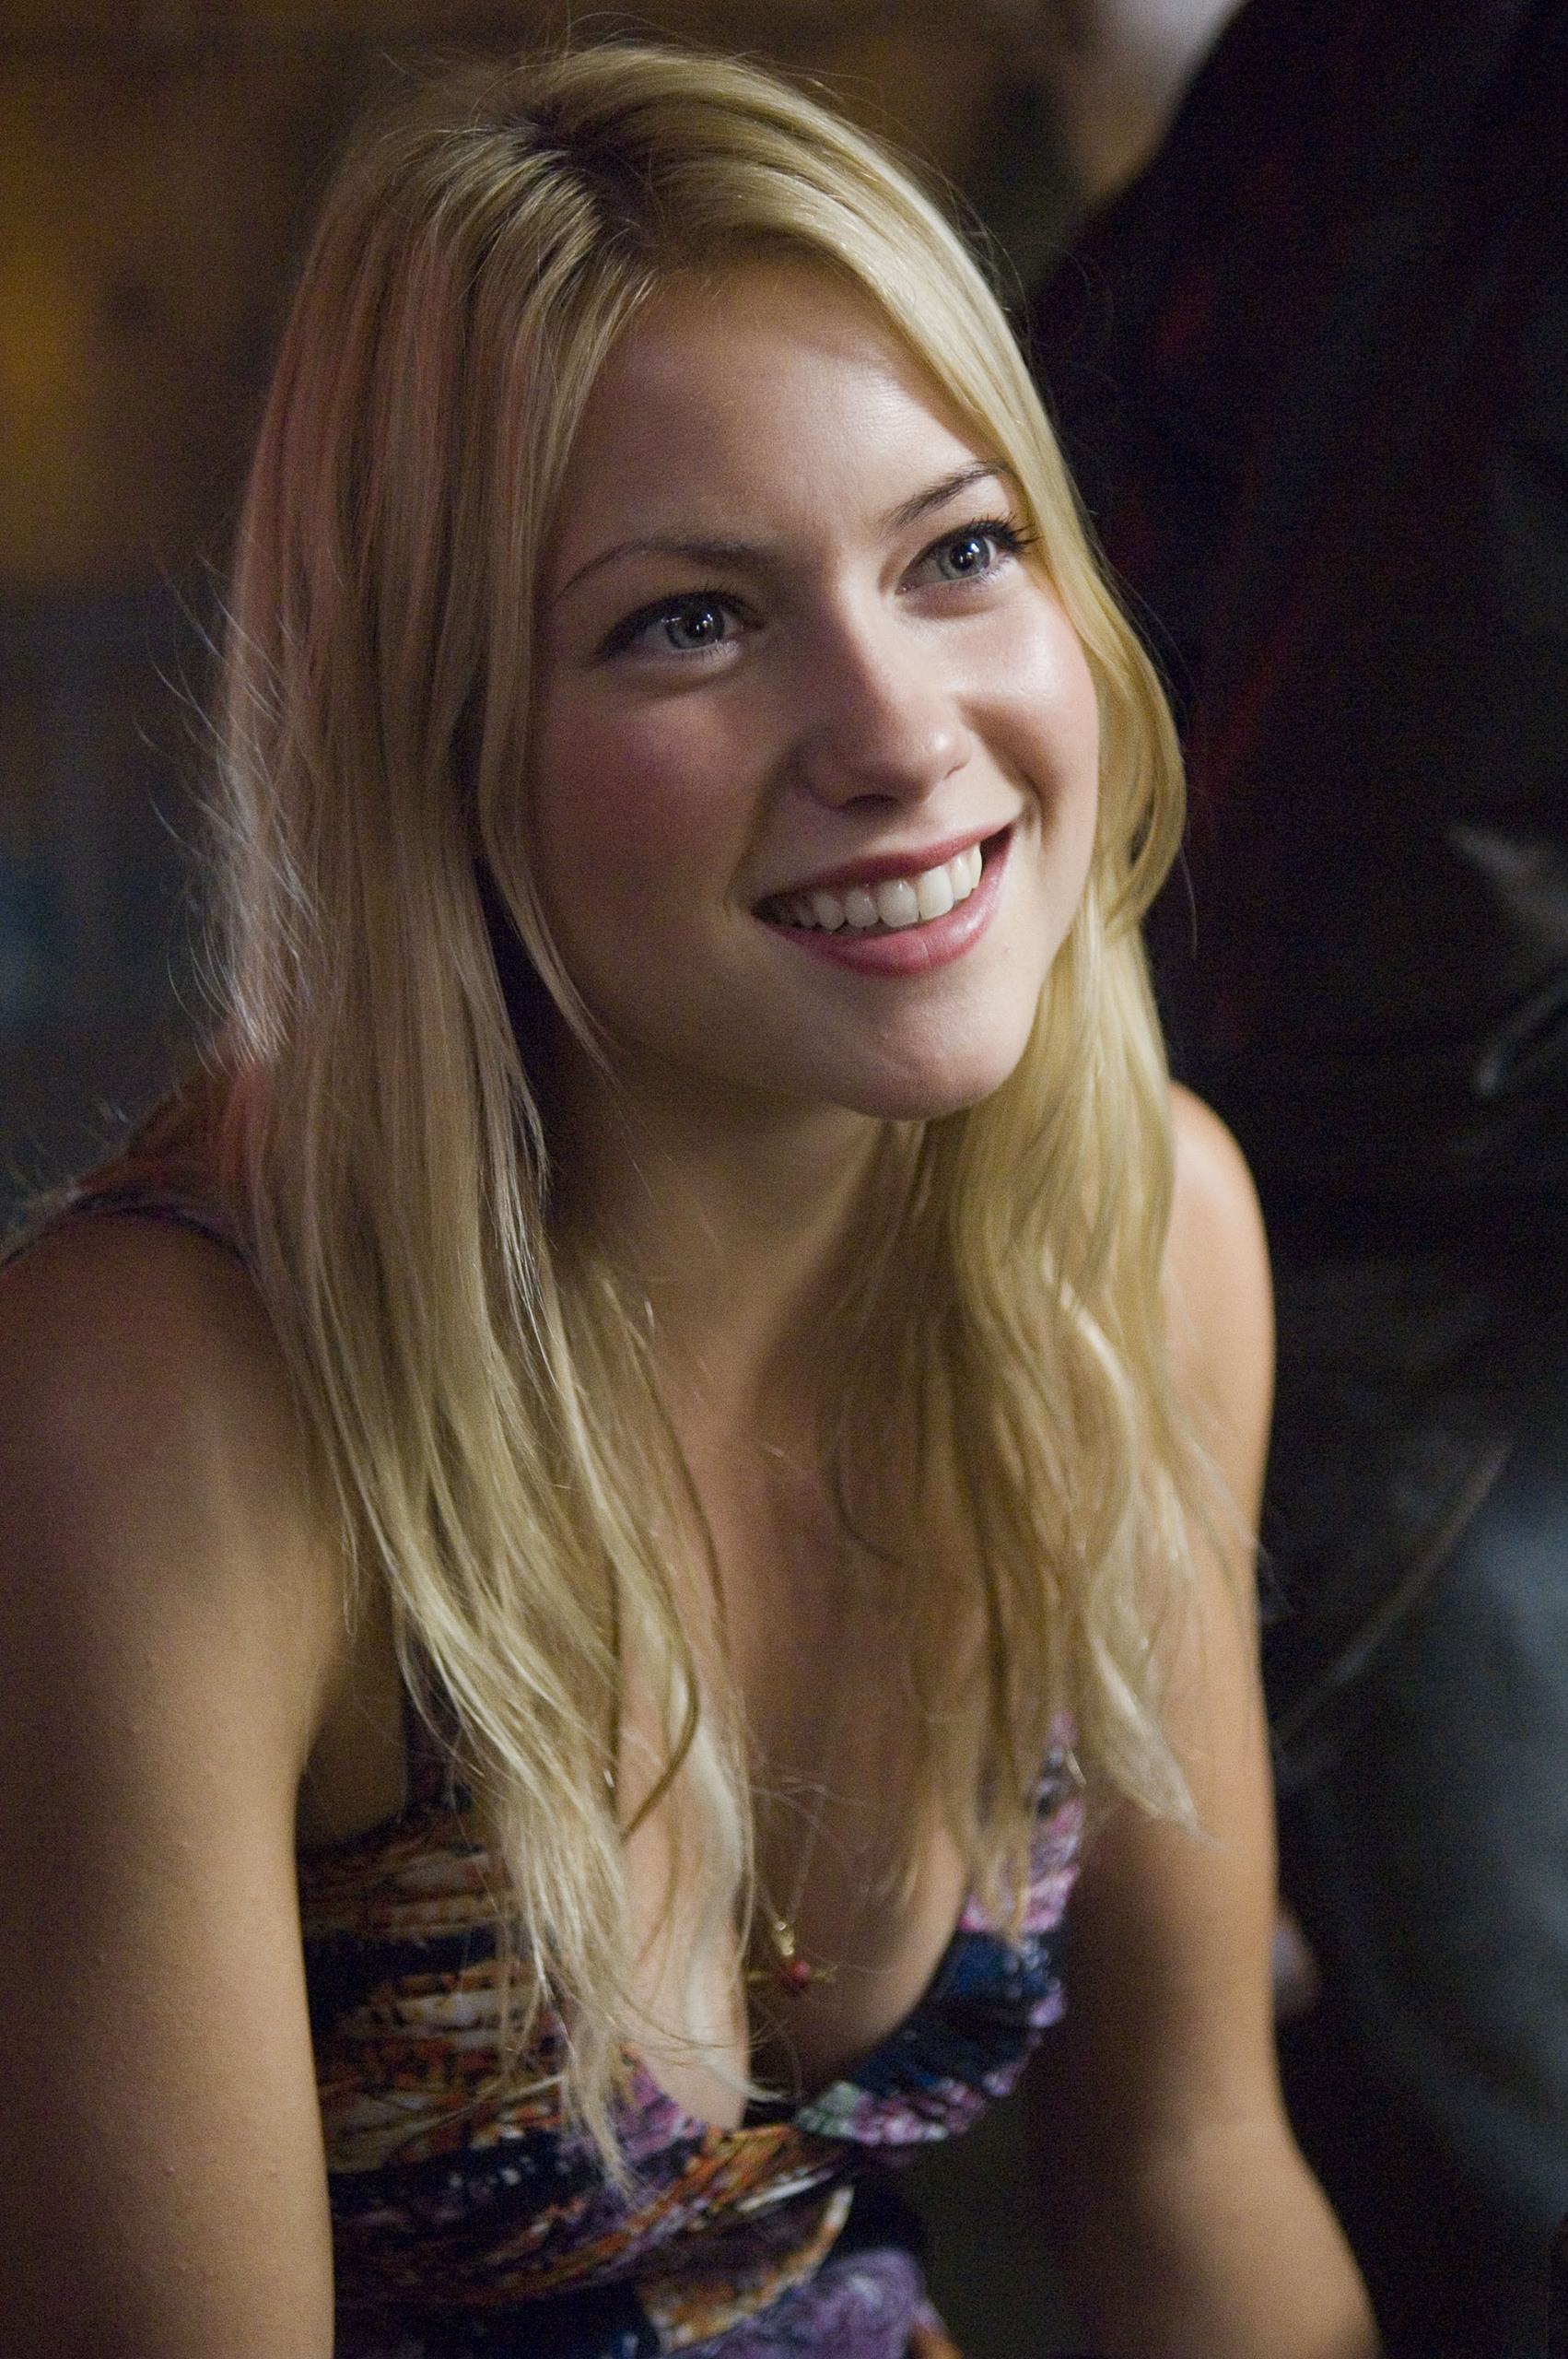 laura ramsey jewelrylaura ramsey photo, laura ramsey boxrec, laura ramsey instagram, laura ramsey official instagram, laura ramsey instagram actress, laura ramsey, laura ramsey married, laura ramsey imdb, laura ramsey boyfriend, laura ramsey wiki, laura ramsey white collar, laura ramsey husband, laura ramsey jewelry, laura ramsey hindsight